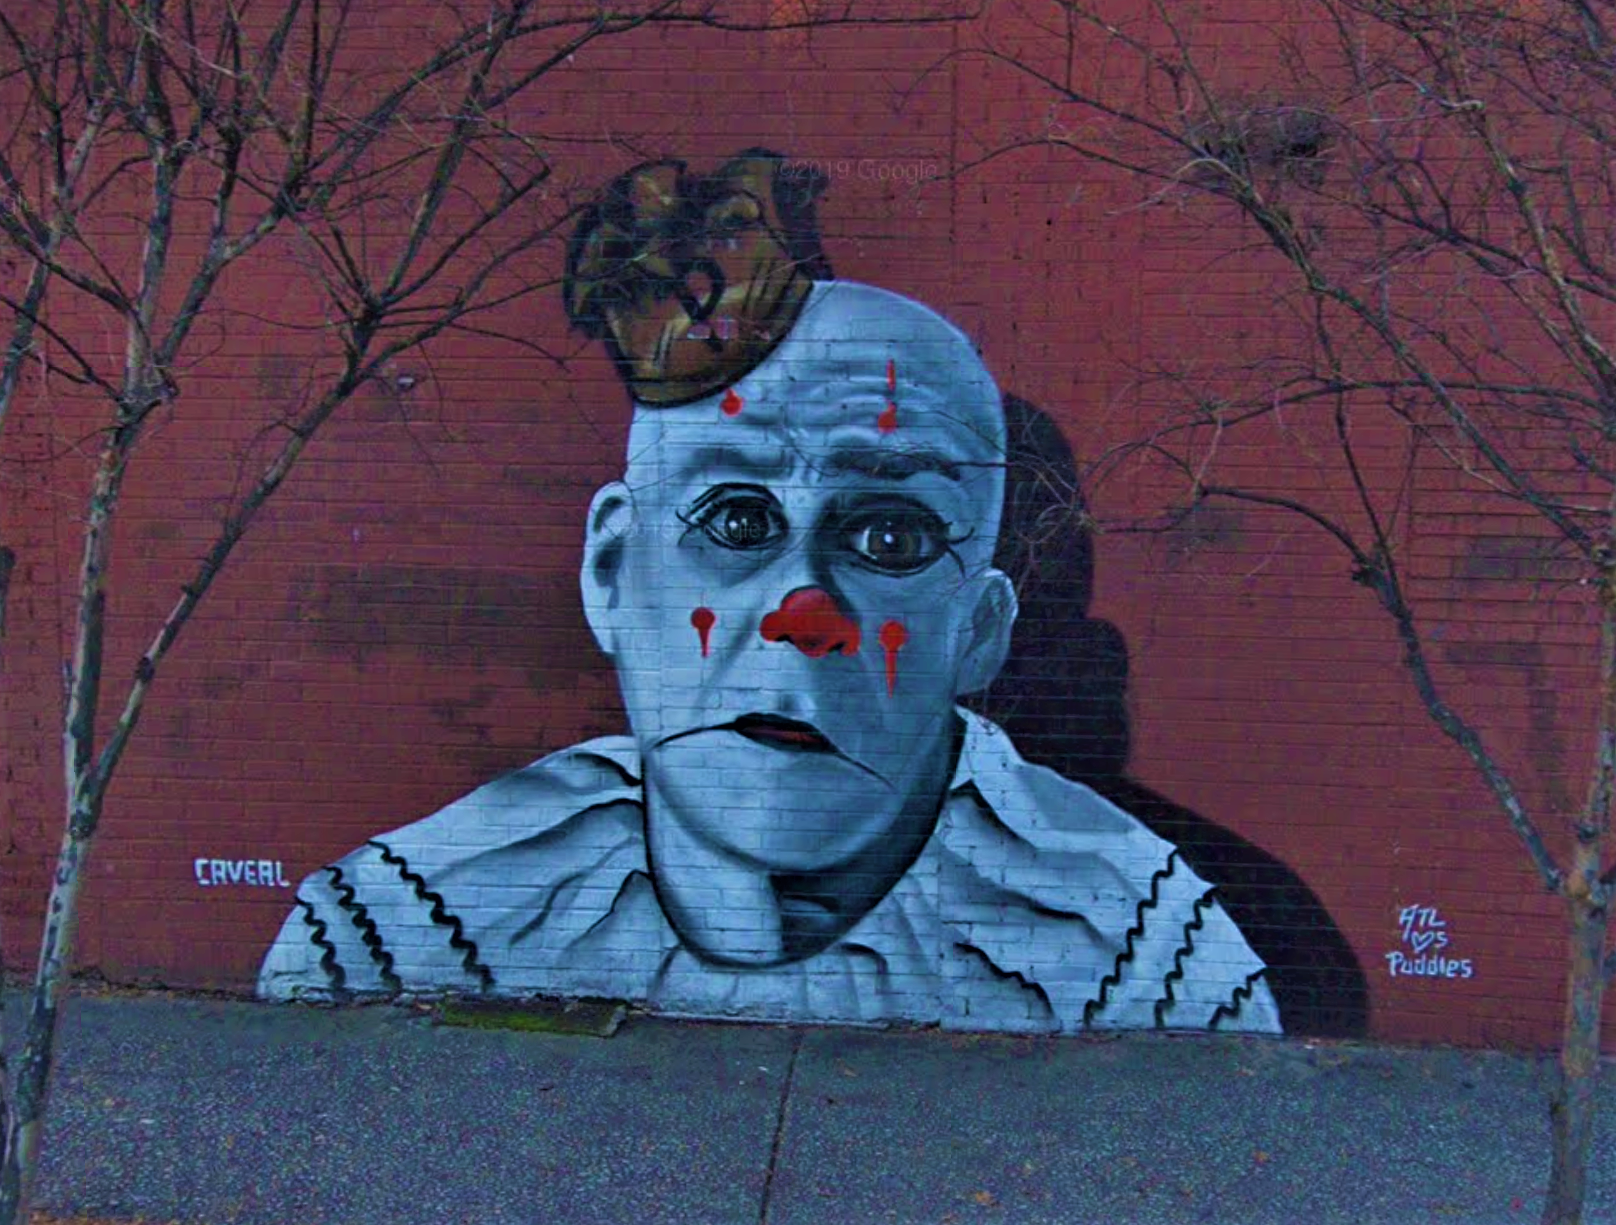 A mural of a sad clown painted on a red brick wall.